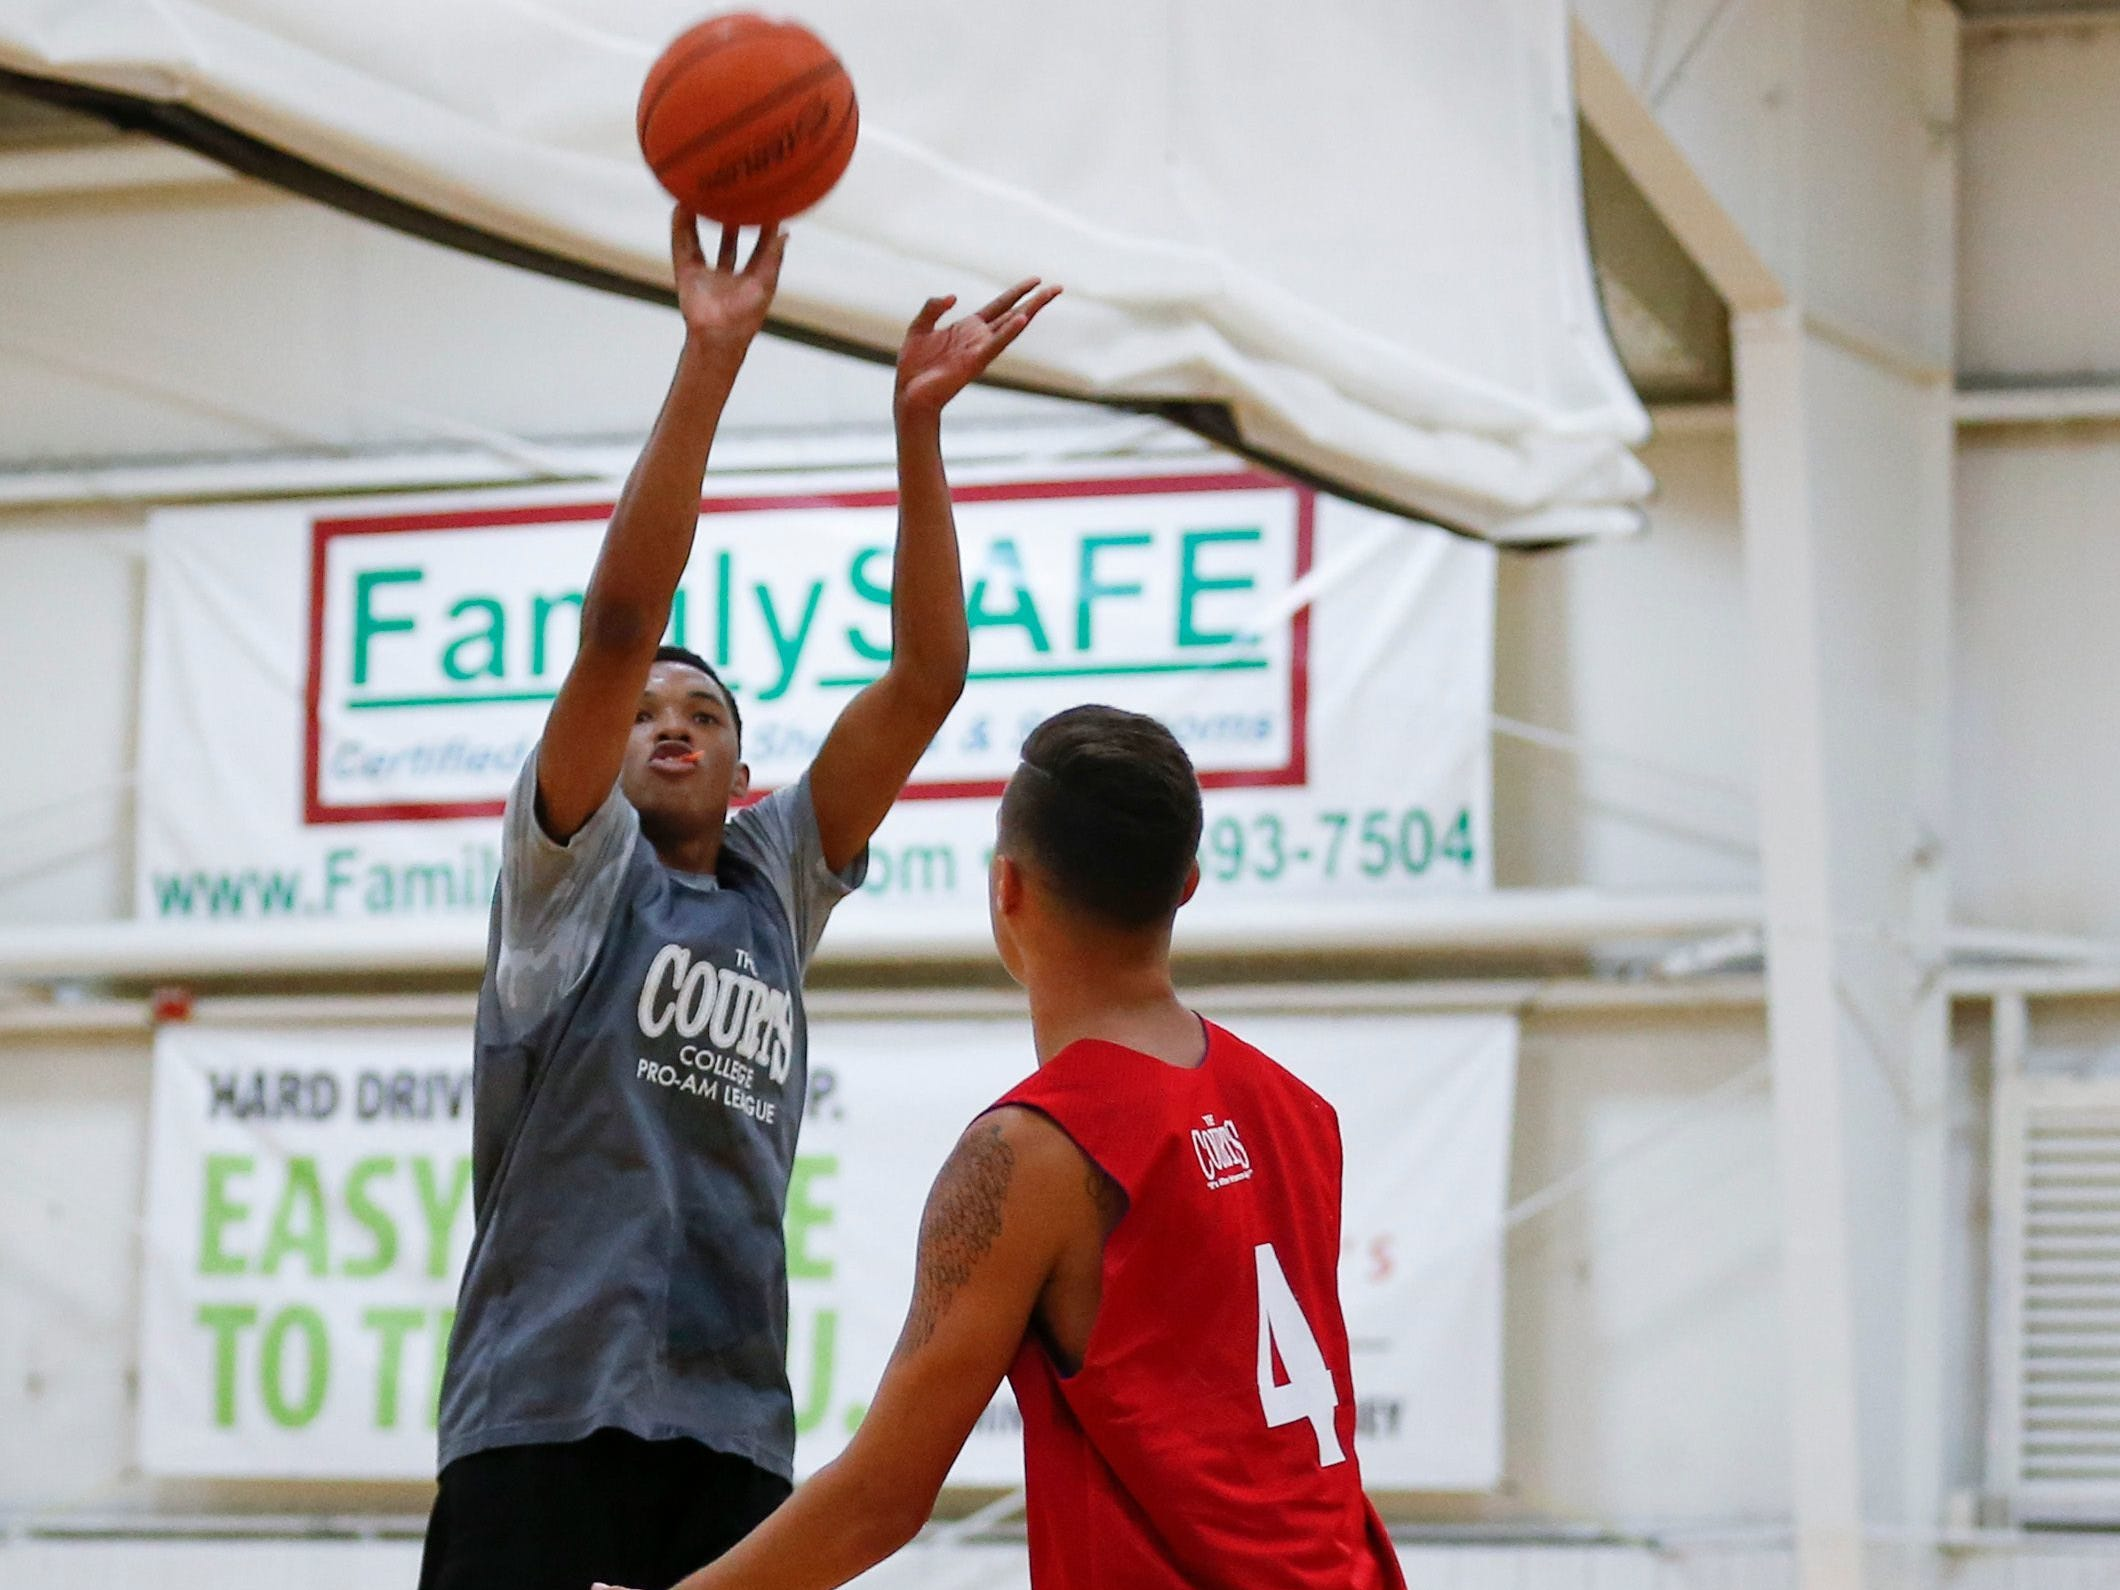 Tyem Freeman shoots a basket during a game at the 19th Annual Men's & Women's College Pro am League at The Courts on Wednesday, June 20, 2018.